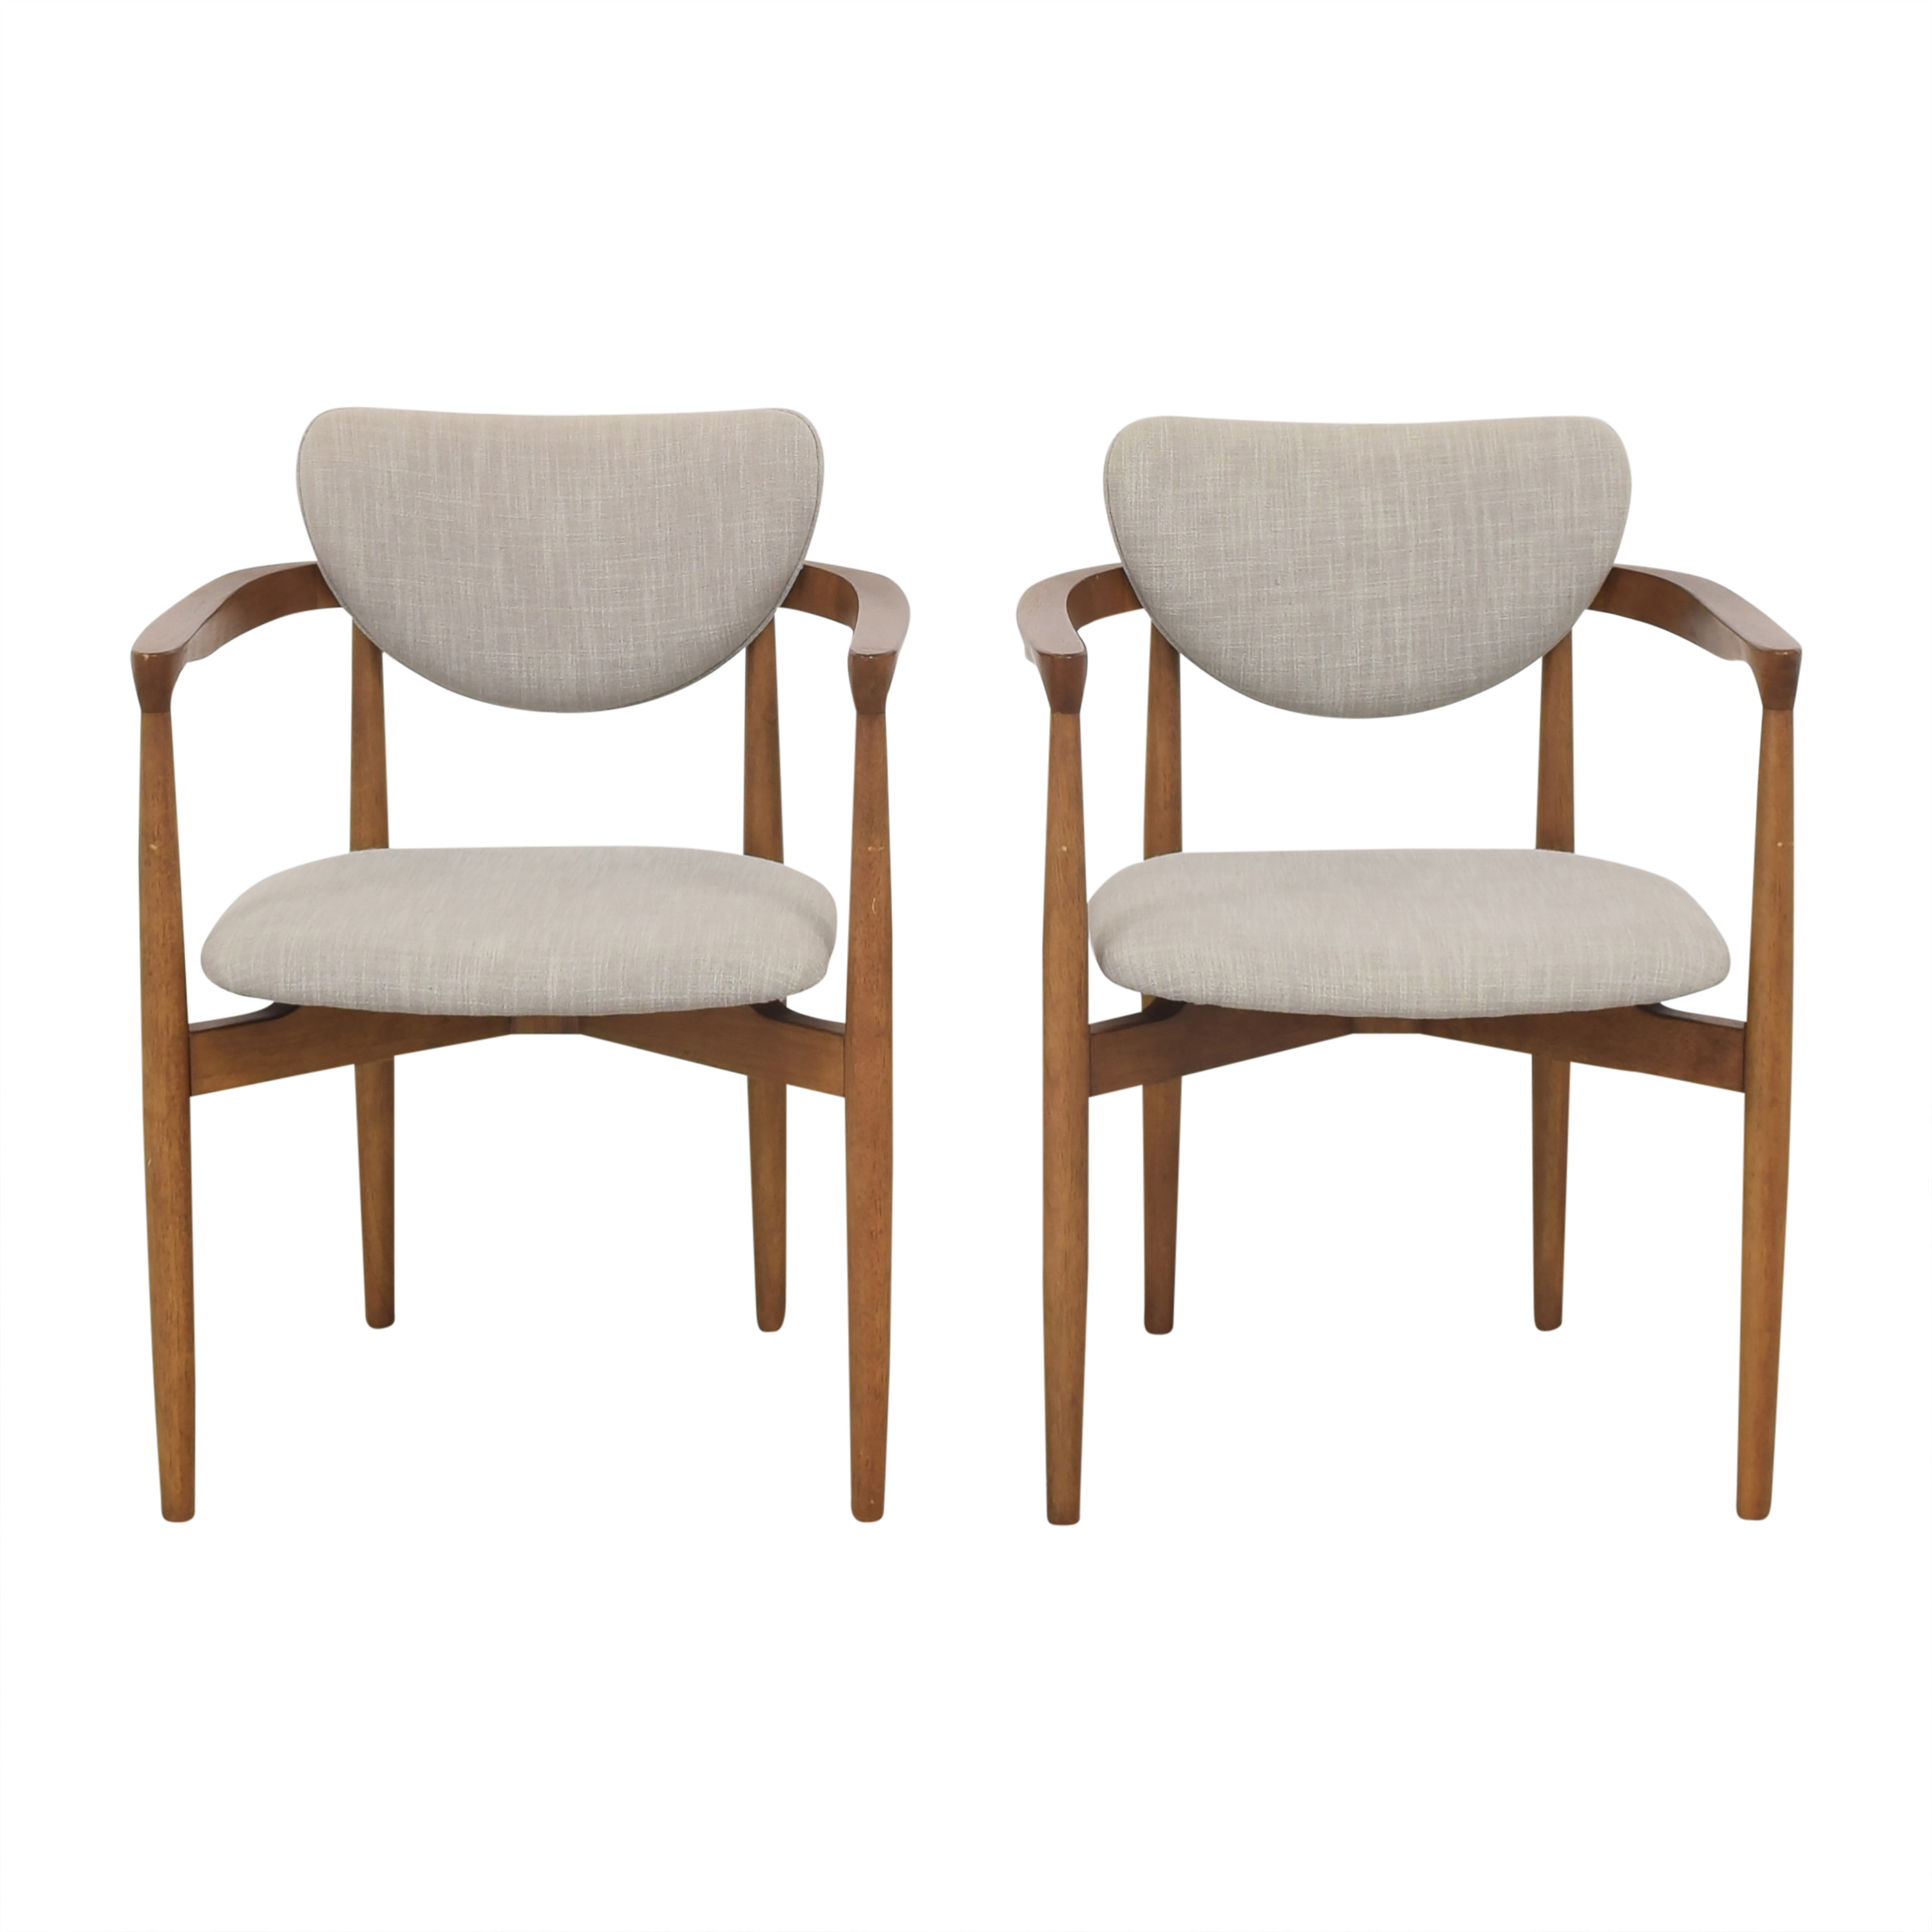 West Elm Dane Upholstered Dining Armchairs / Chairs